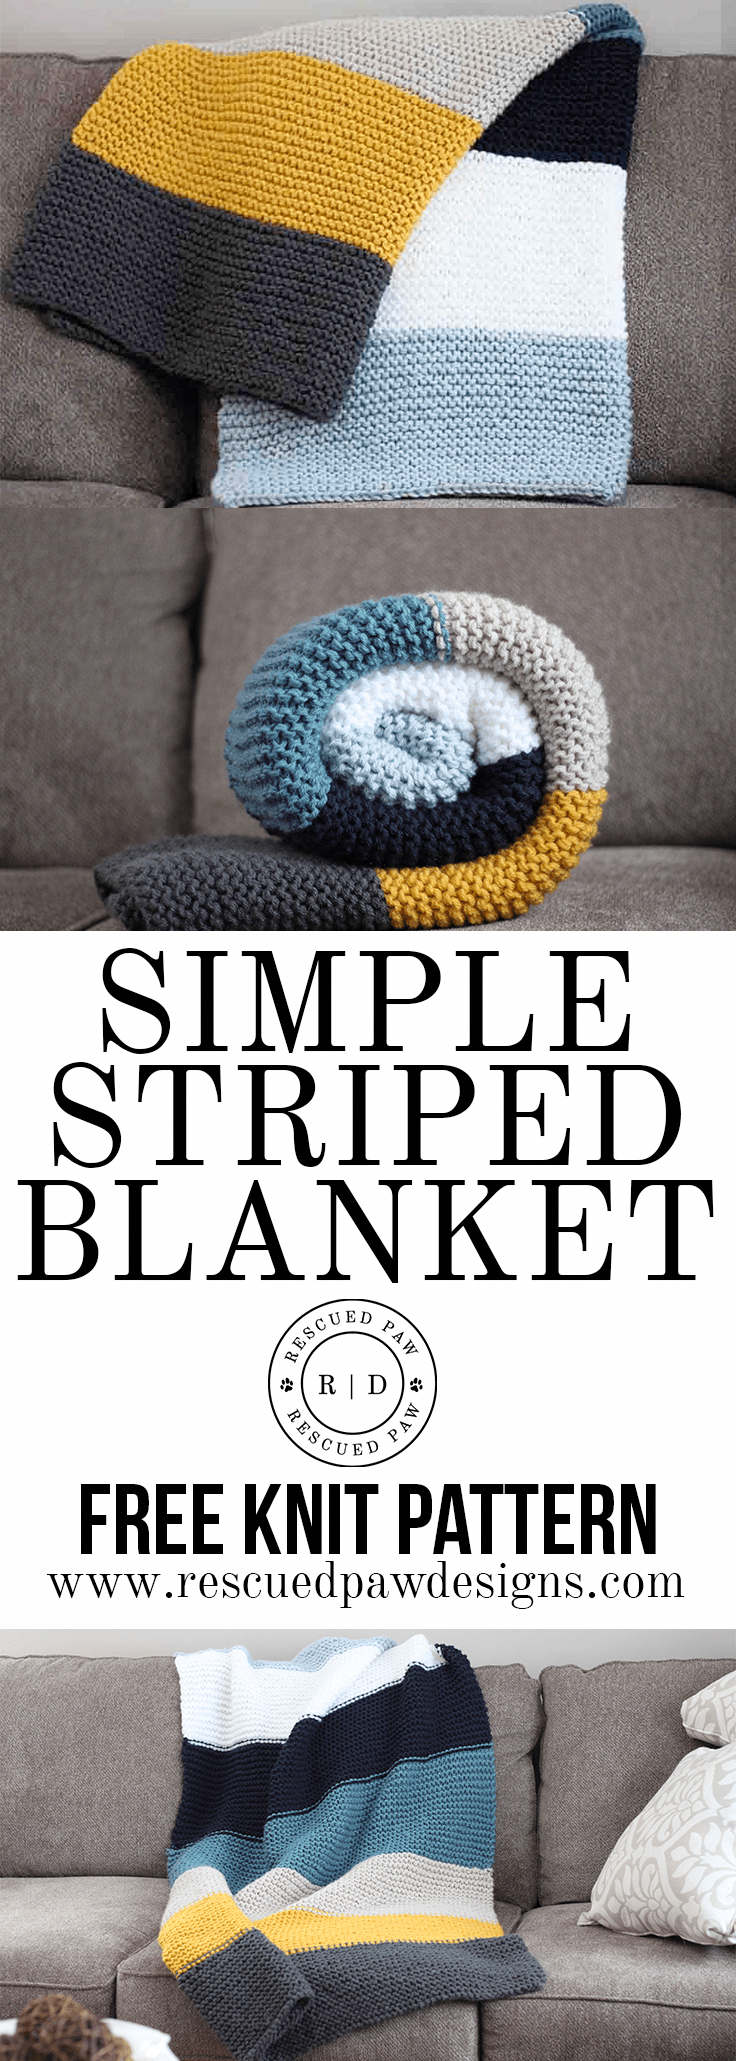 How to Knit a Blanket - Free Knitting Pattern - Free Step by Step Beginner Knit Blanket Pattern #knittingideas